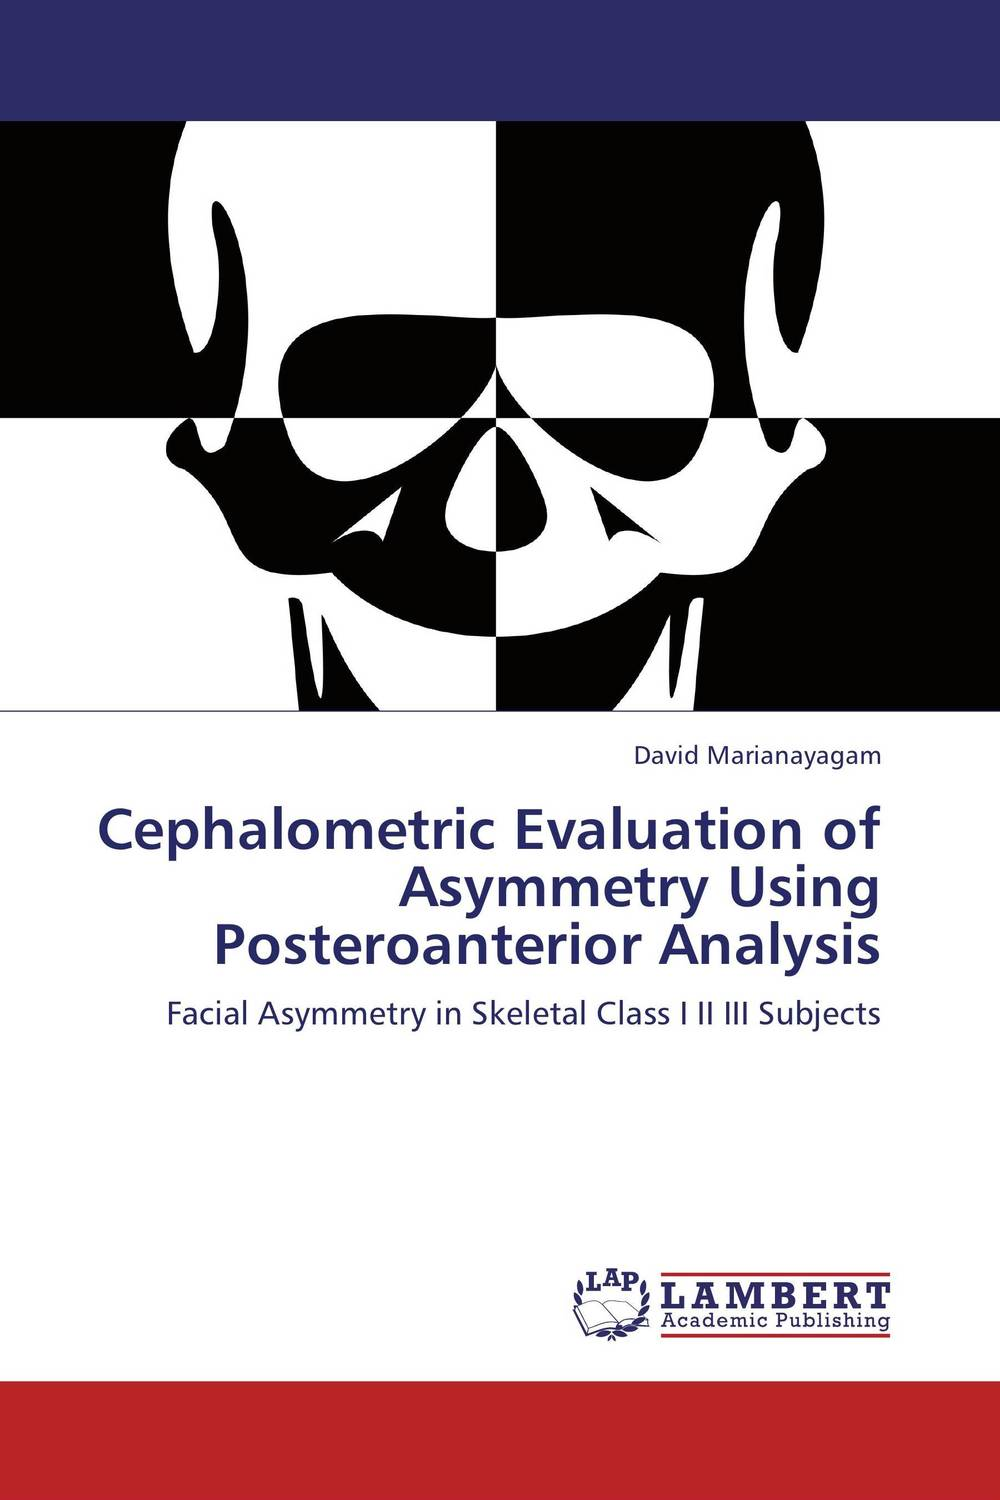 Cephalometric Evaluation of Asymmetry Using Posteroanterior Analysis found in brooklyn